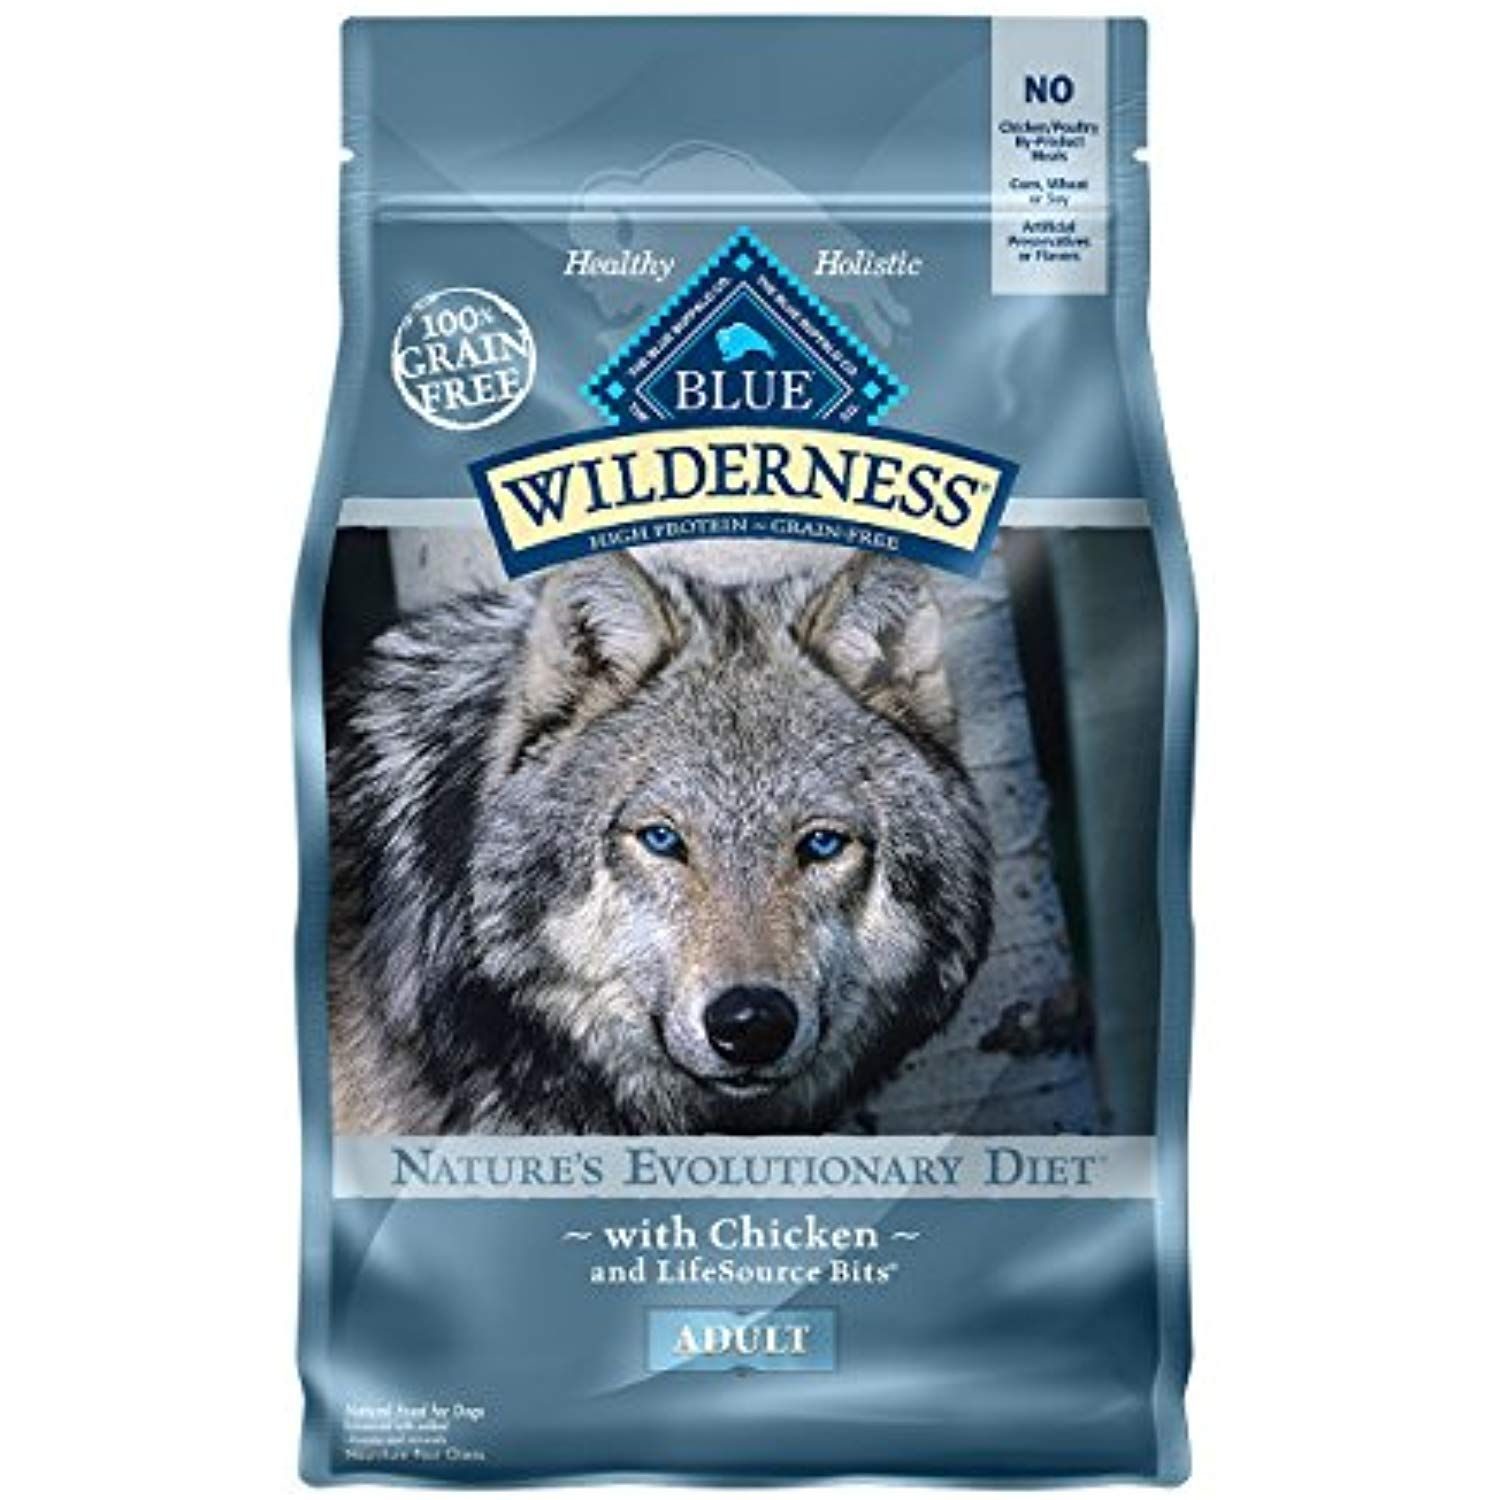 Blue Buffalo Wilderness High Protein Grain Free Natural Adult Dry